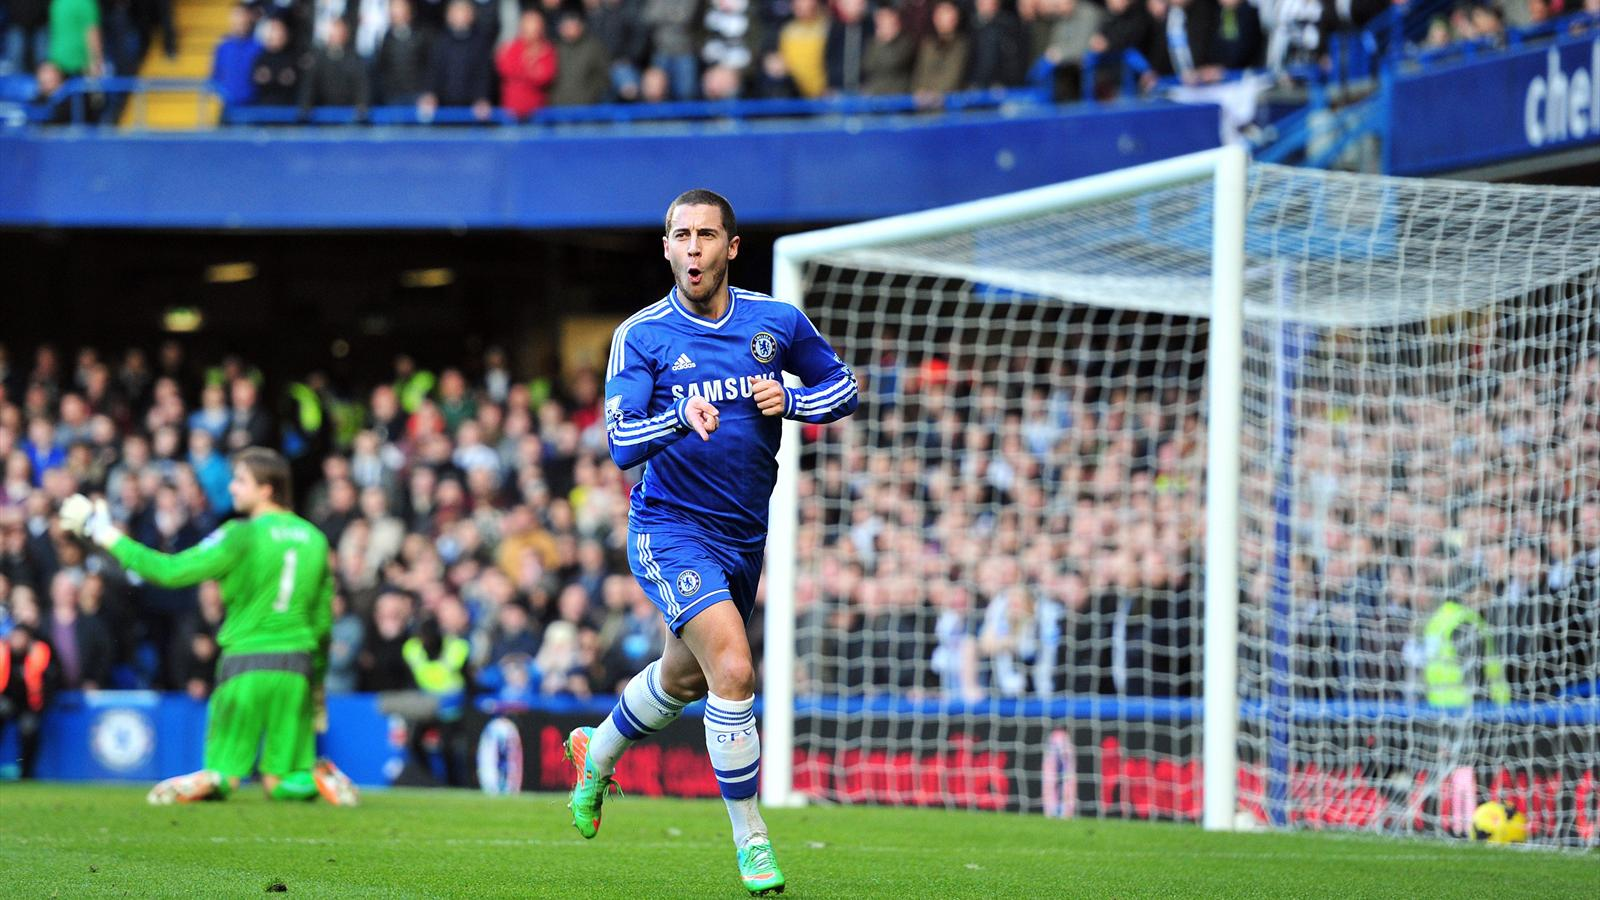 Eden Hazard scores for Chelsea against Newcastle (AFP)